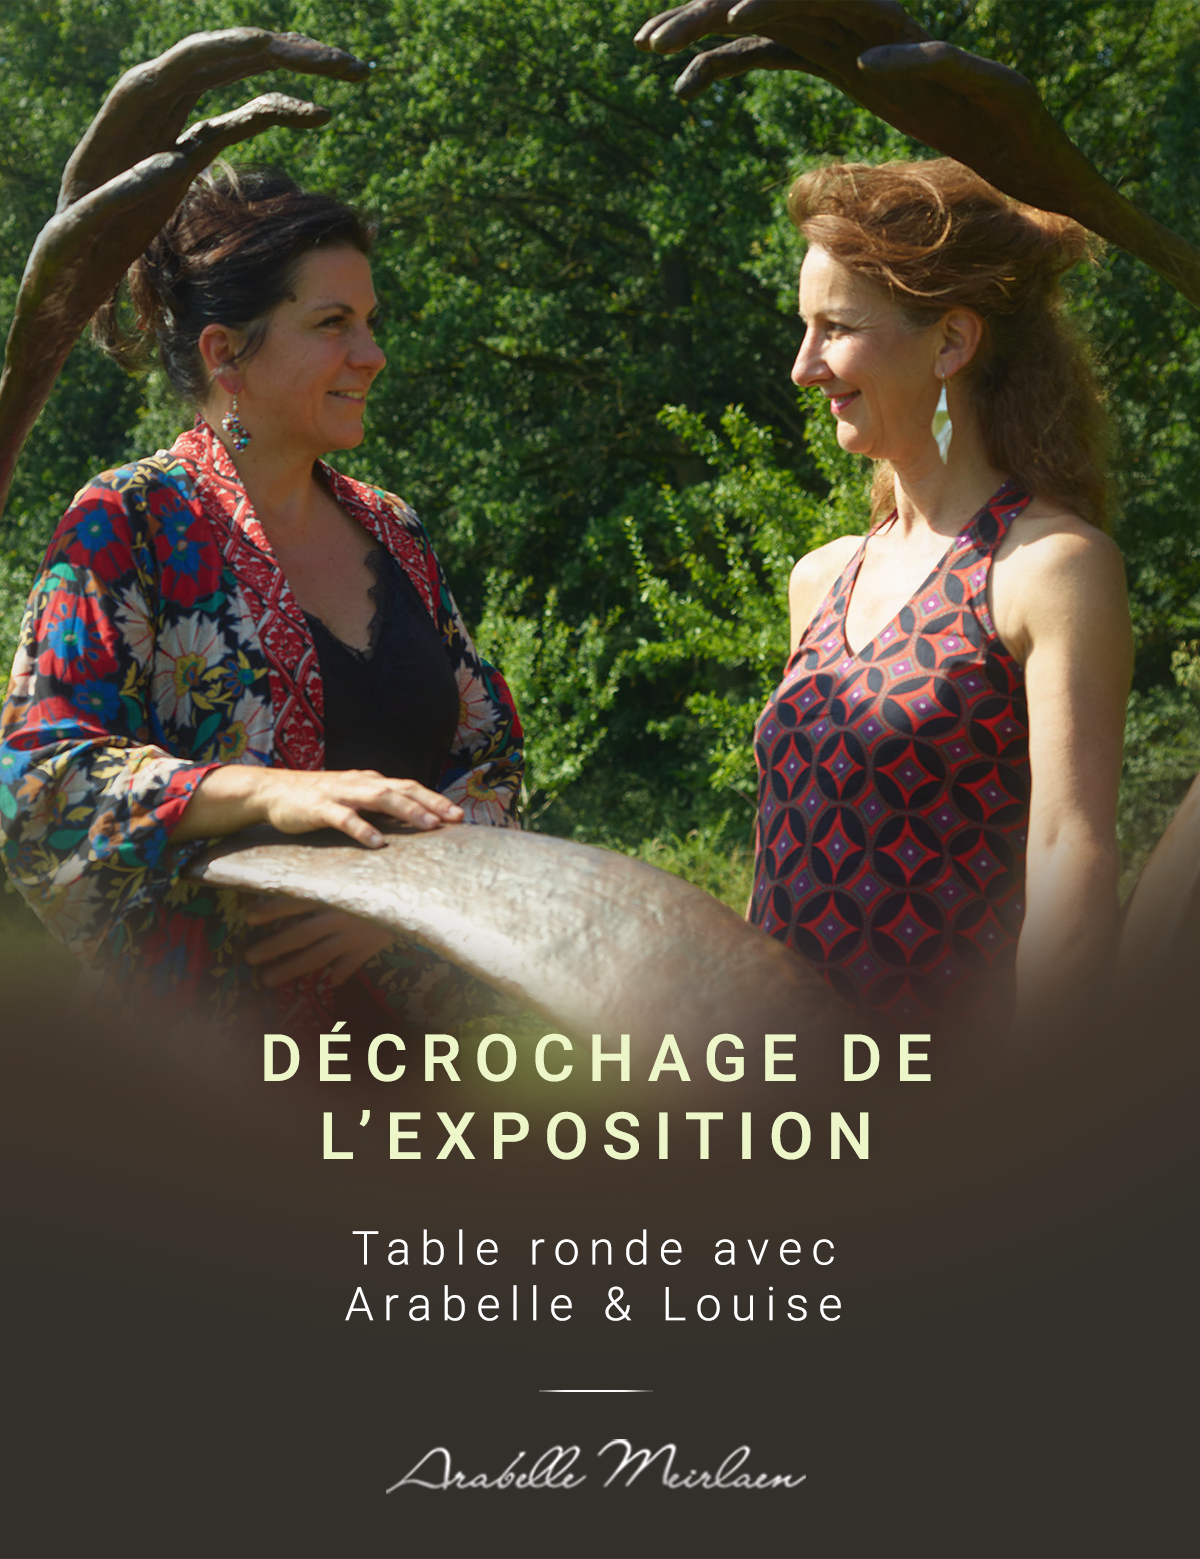 Table ronde Arabelle & Louise vignette